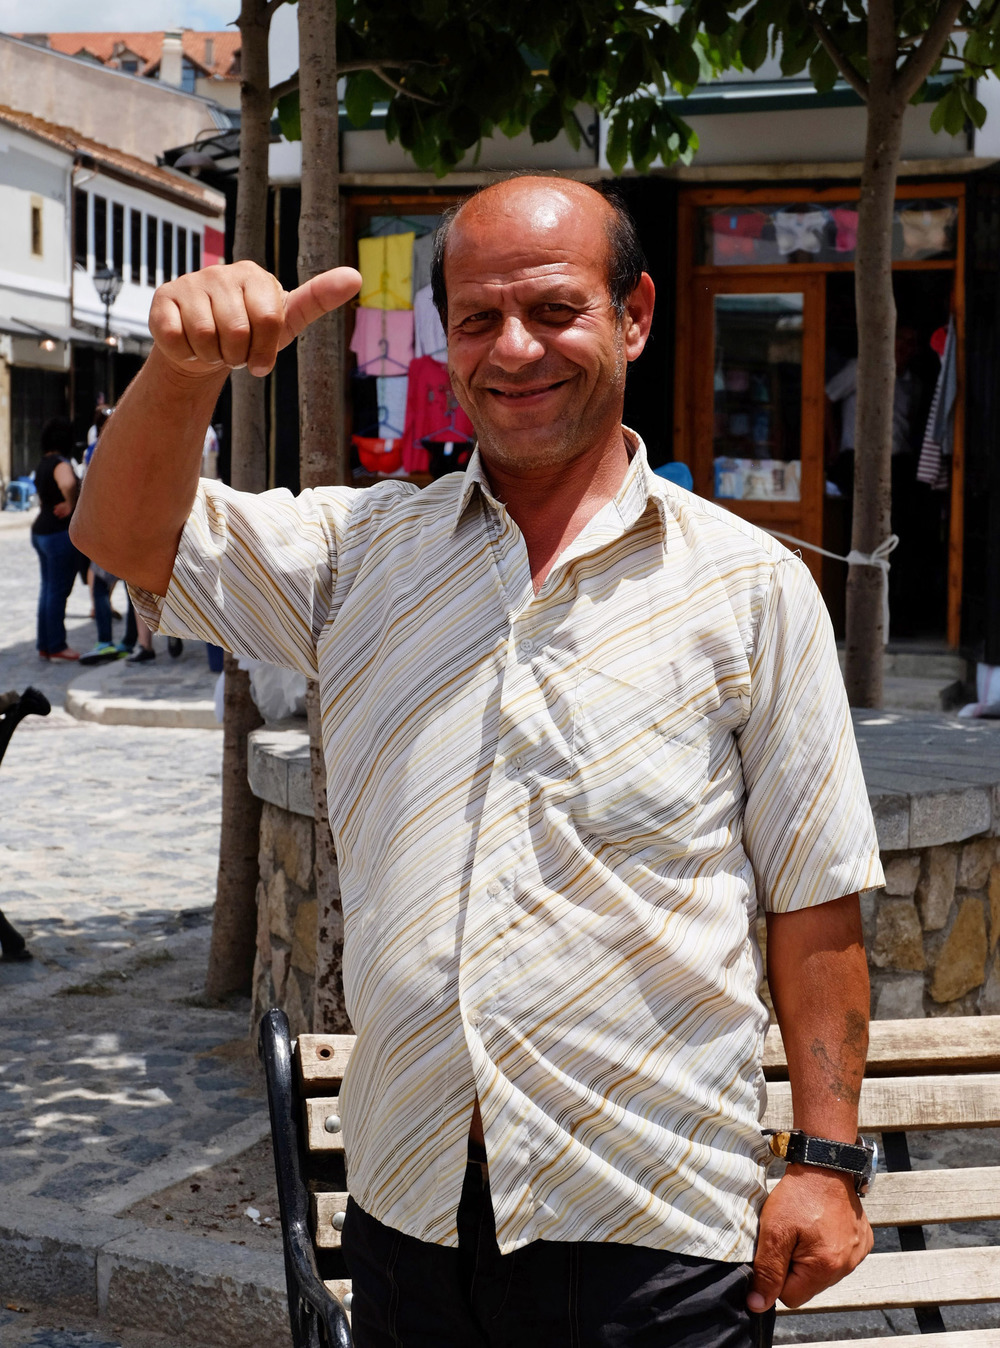 After posing for this picture, this gentleman was eager to sell us some watches at his little shop.